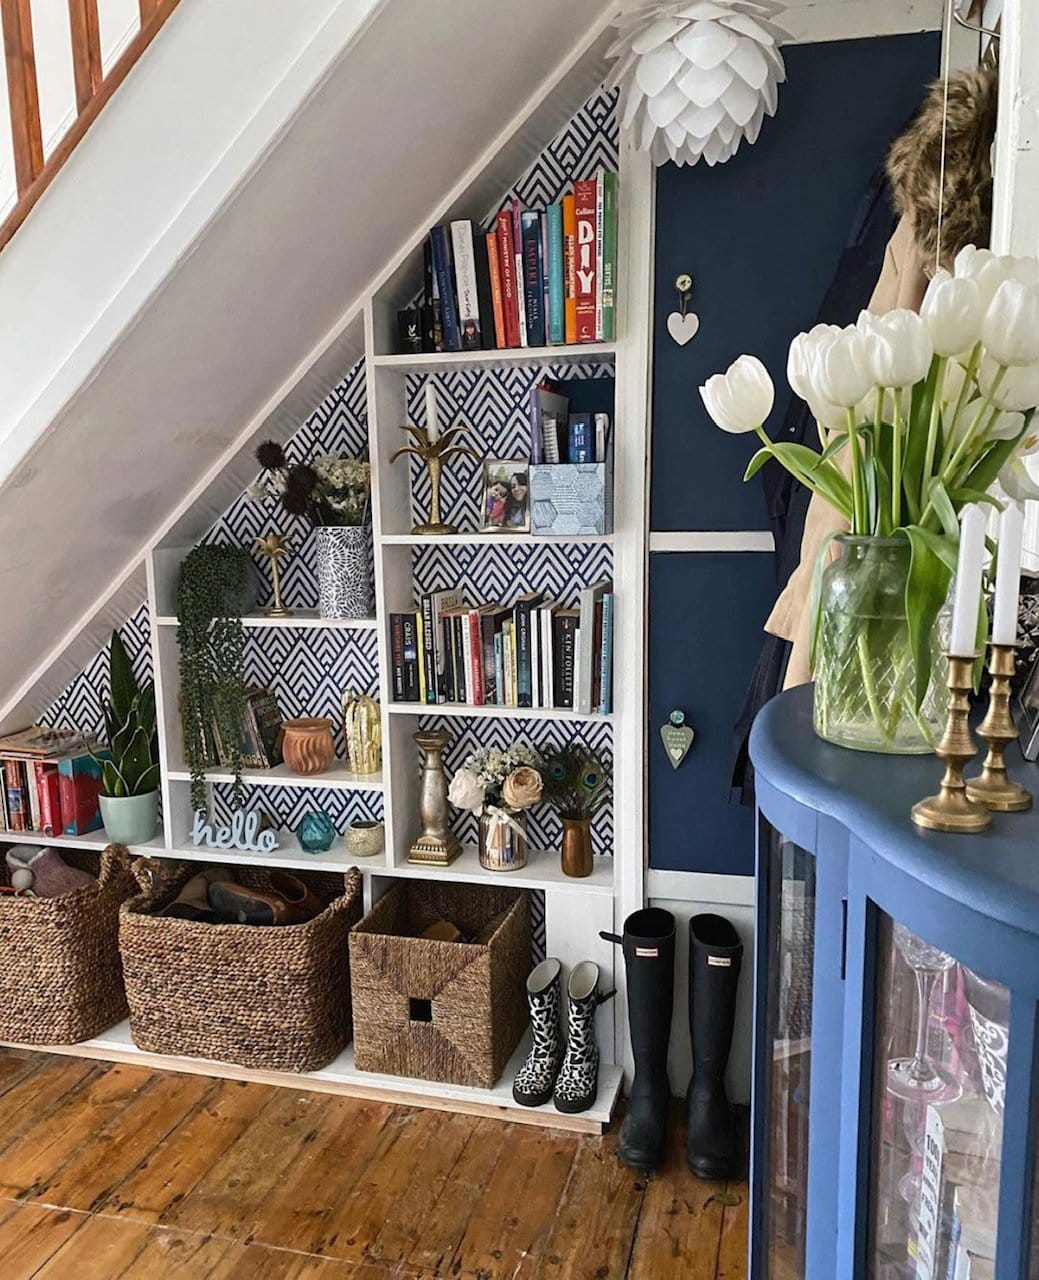 10 Ingenious Storage Ideas For Under The Stairs Melanie Jade Design